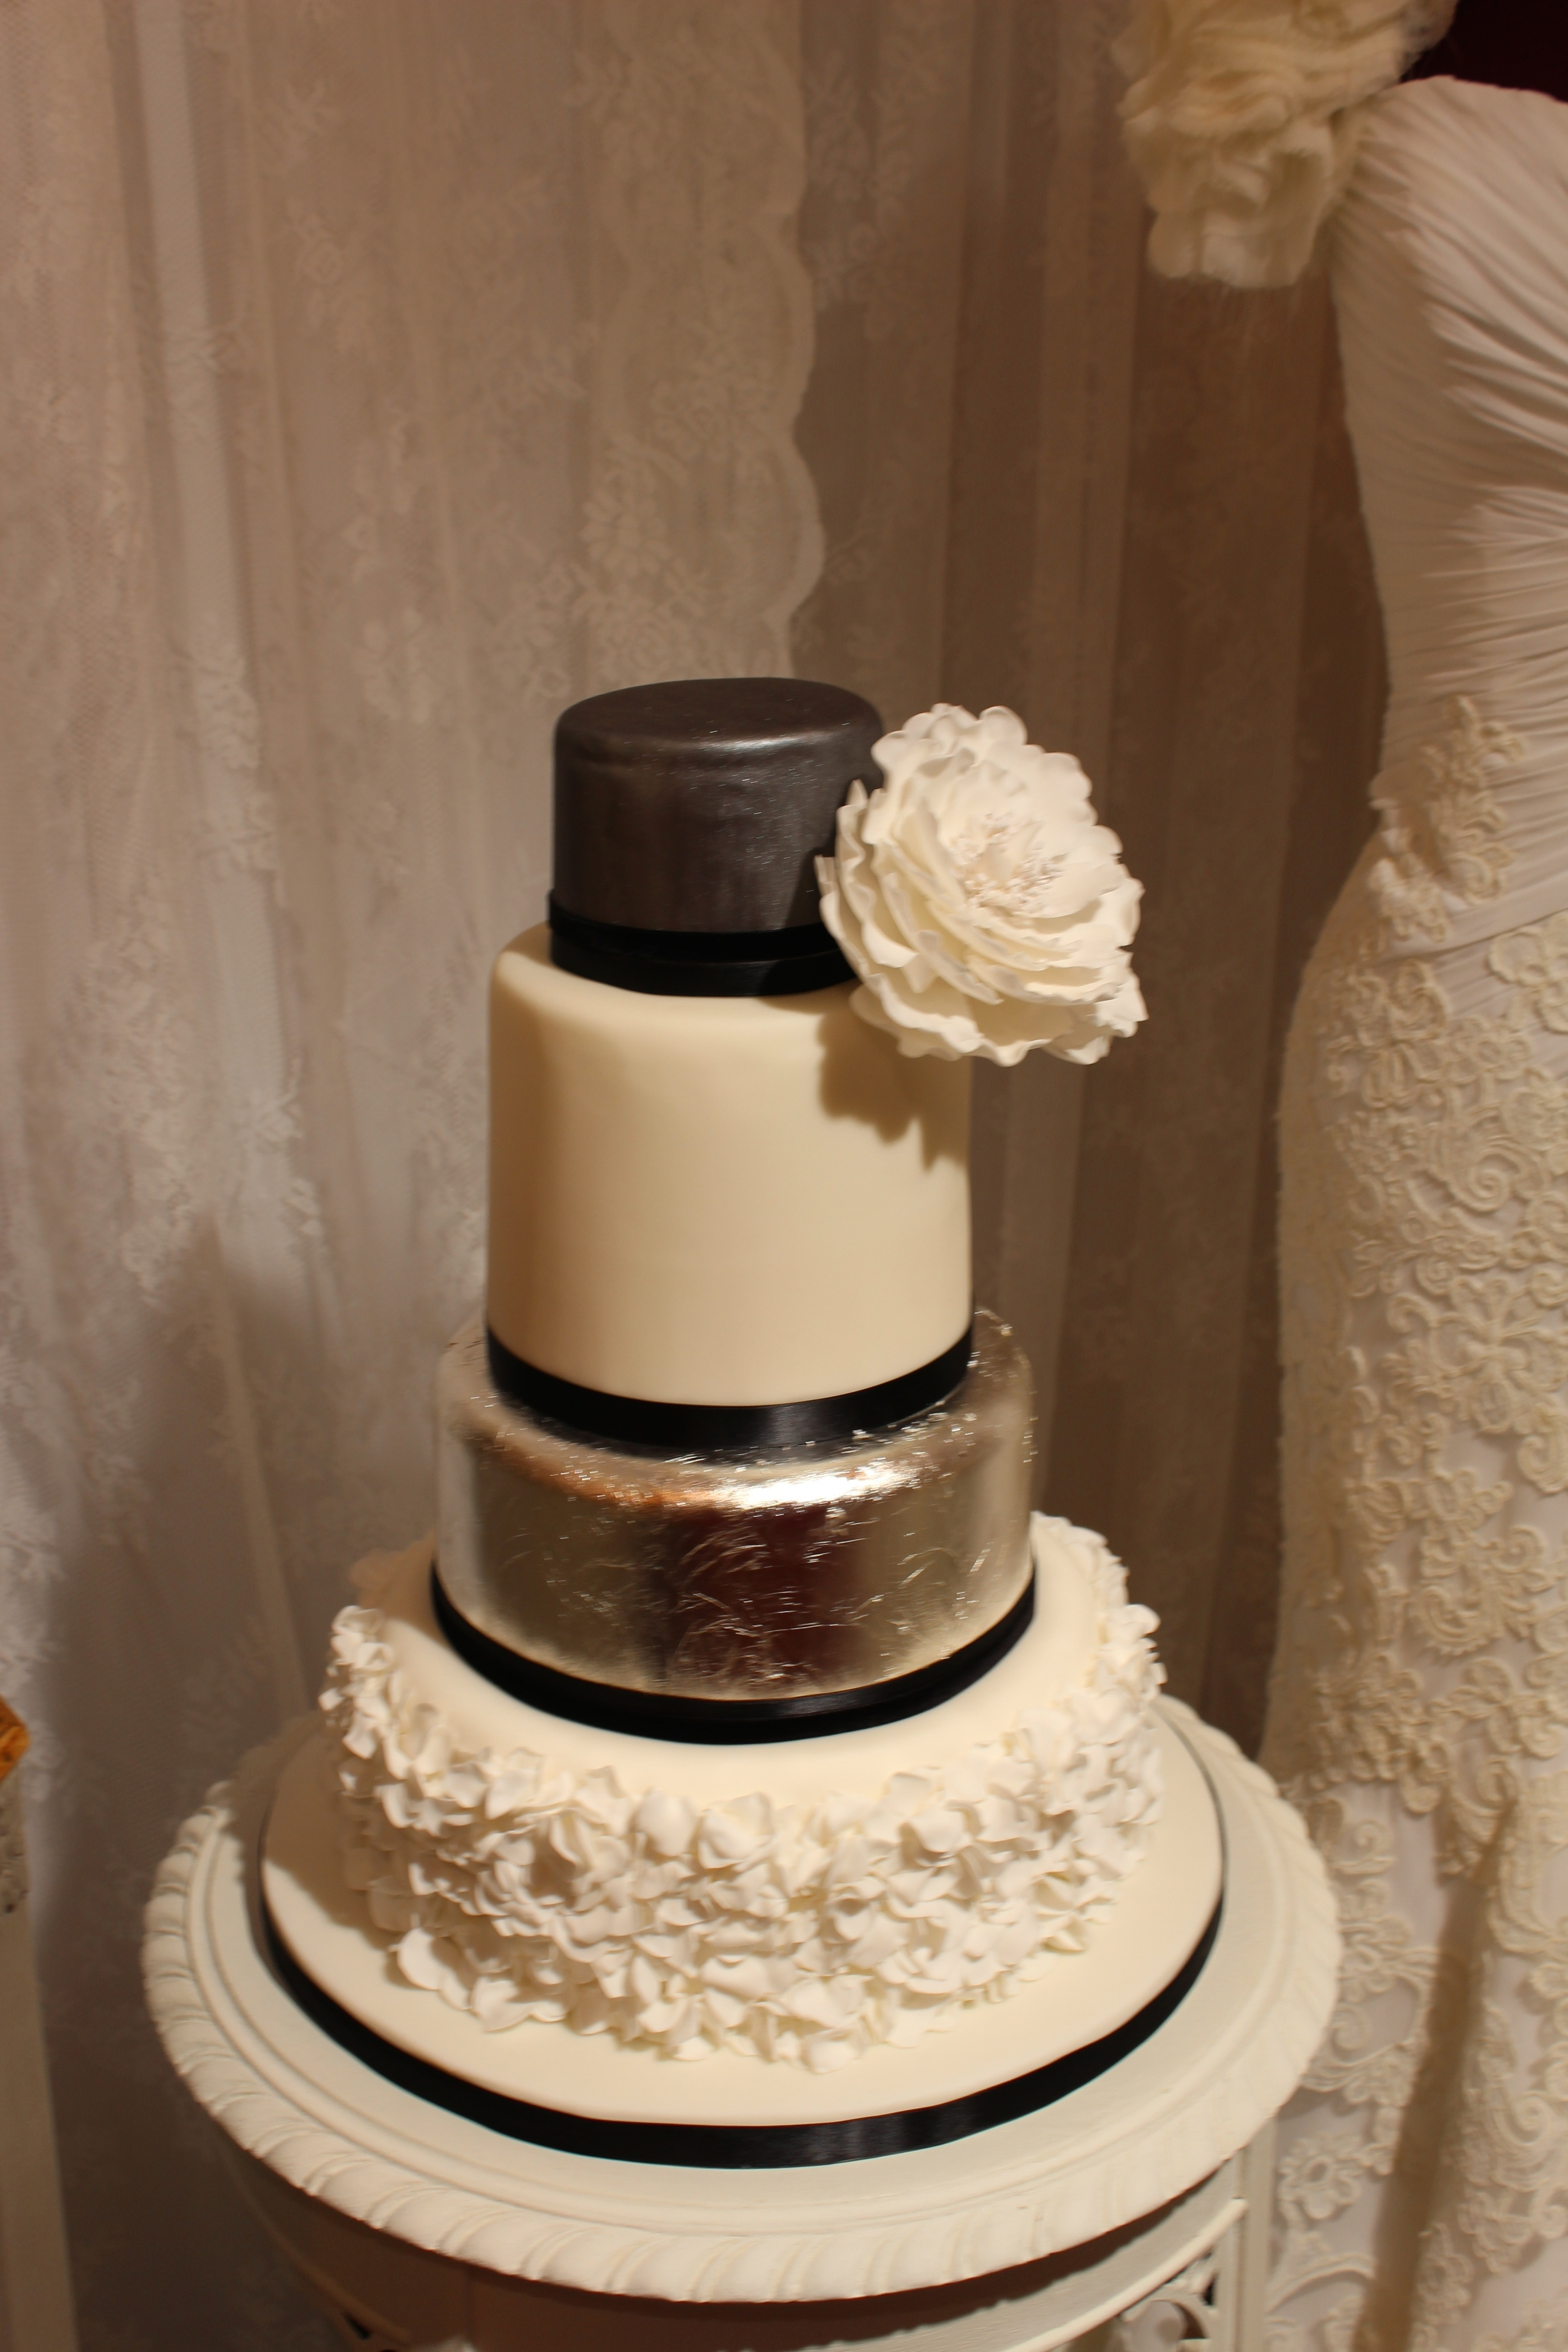 Silver ruffle 4 tier cake with open peony